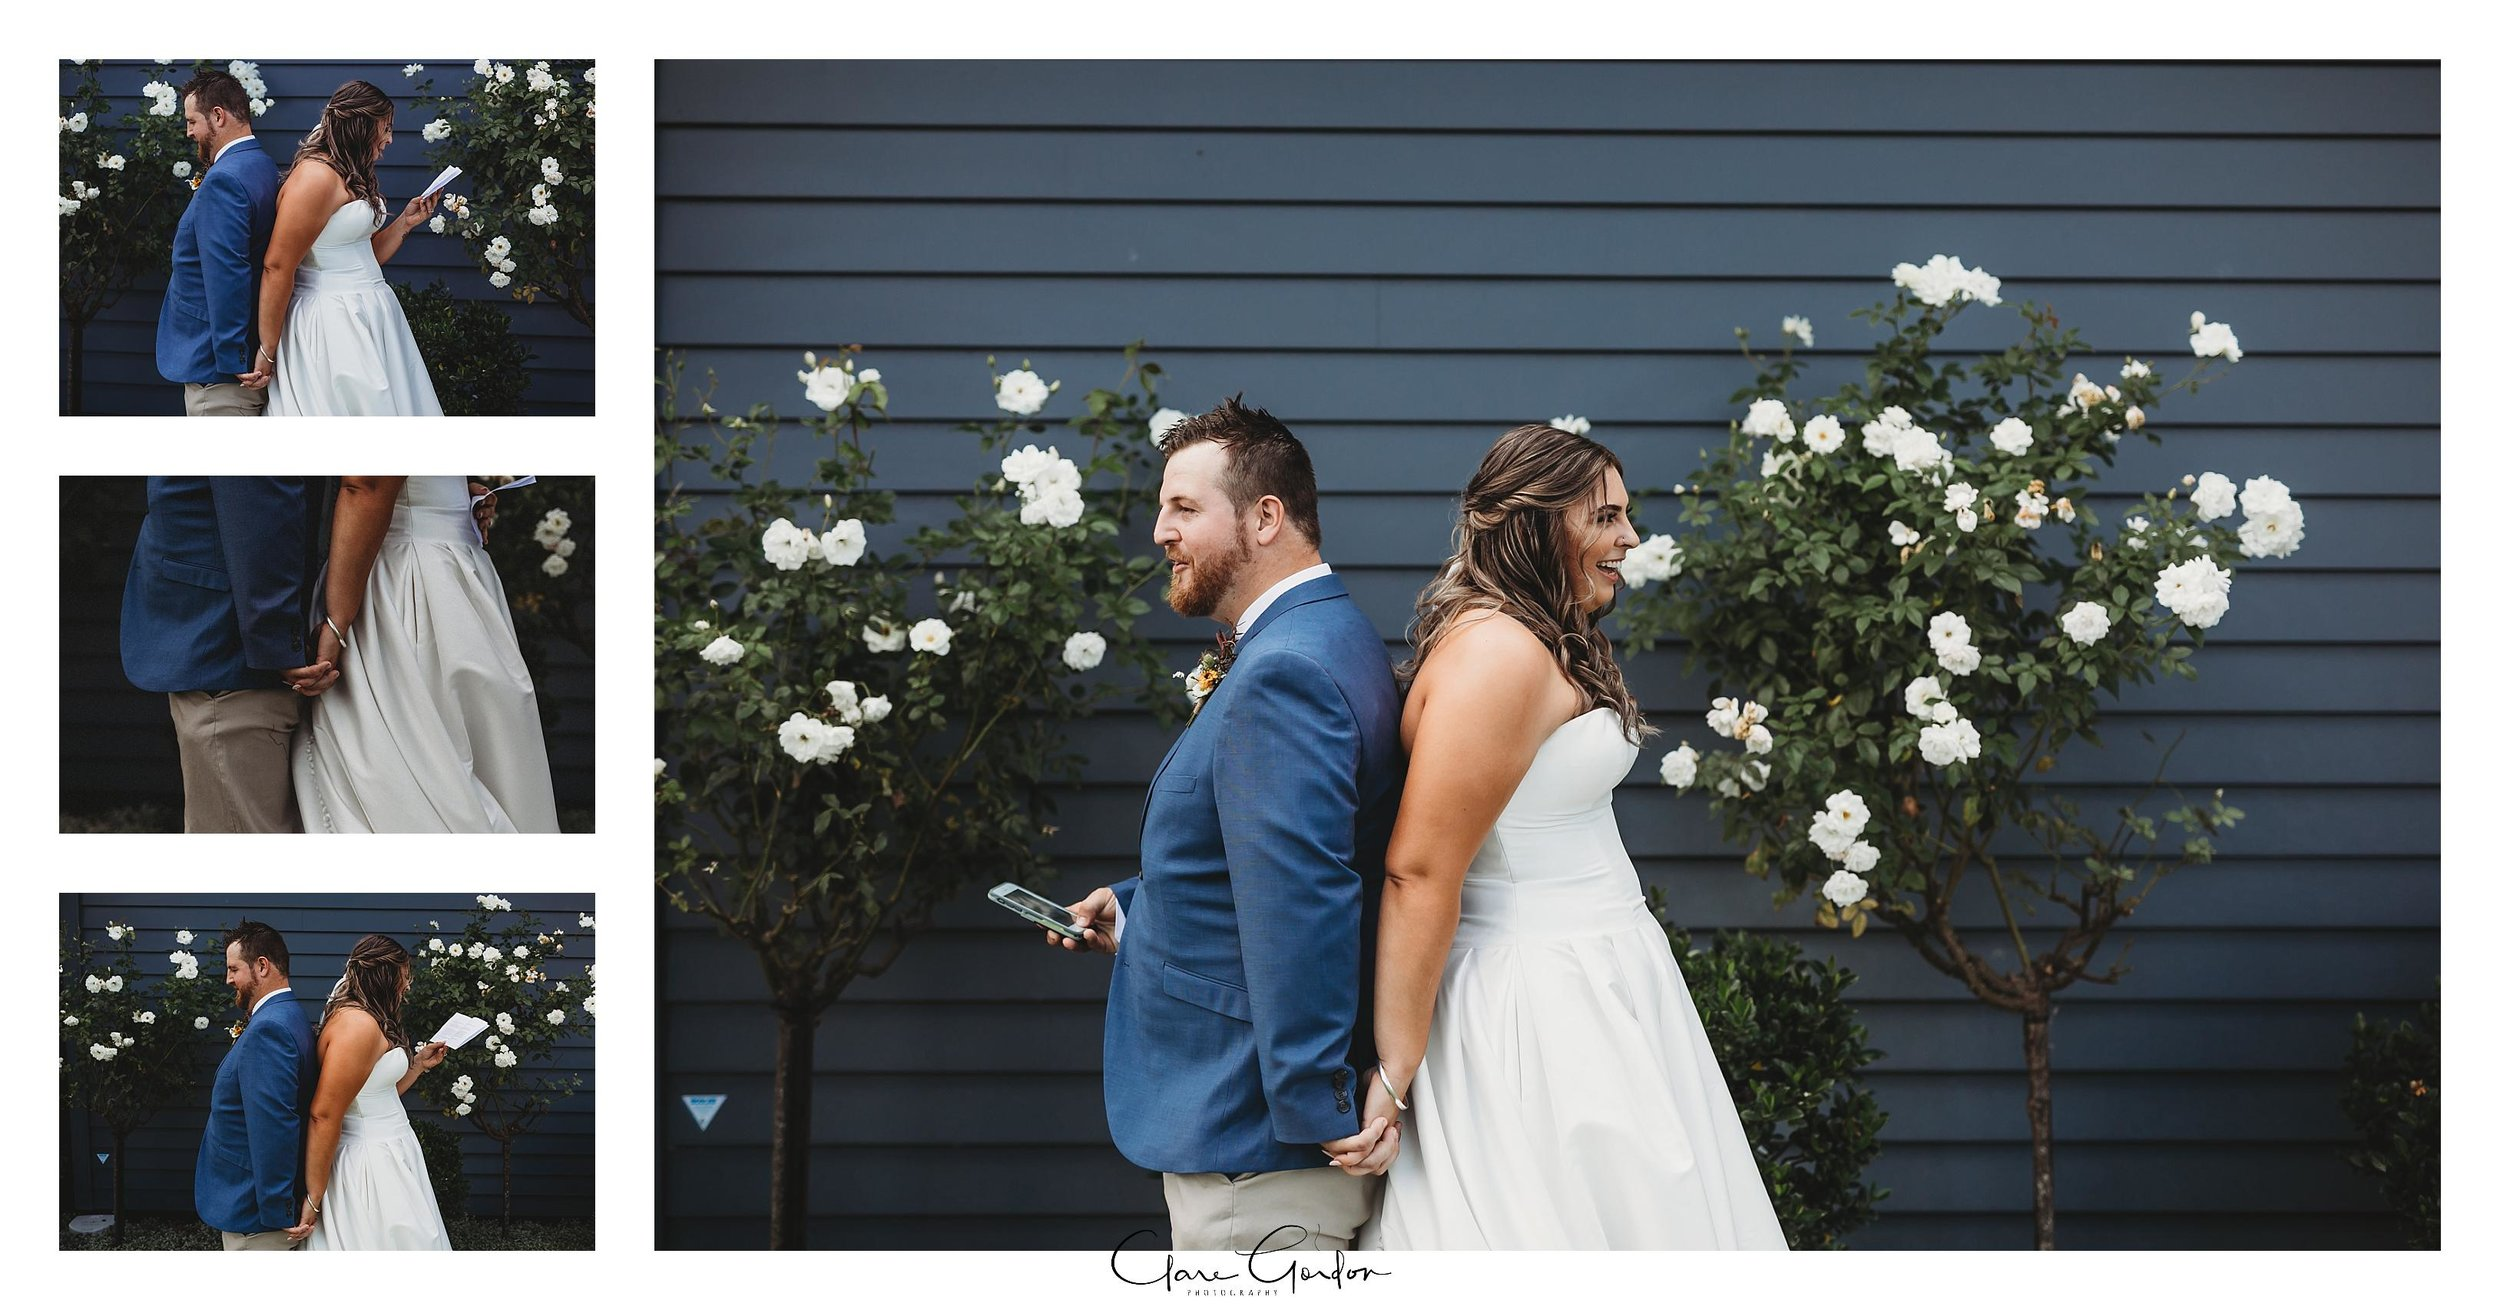 Bride-and-groom-reading-vows-coopers-function-rooms